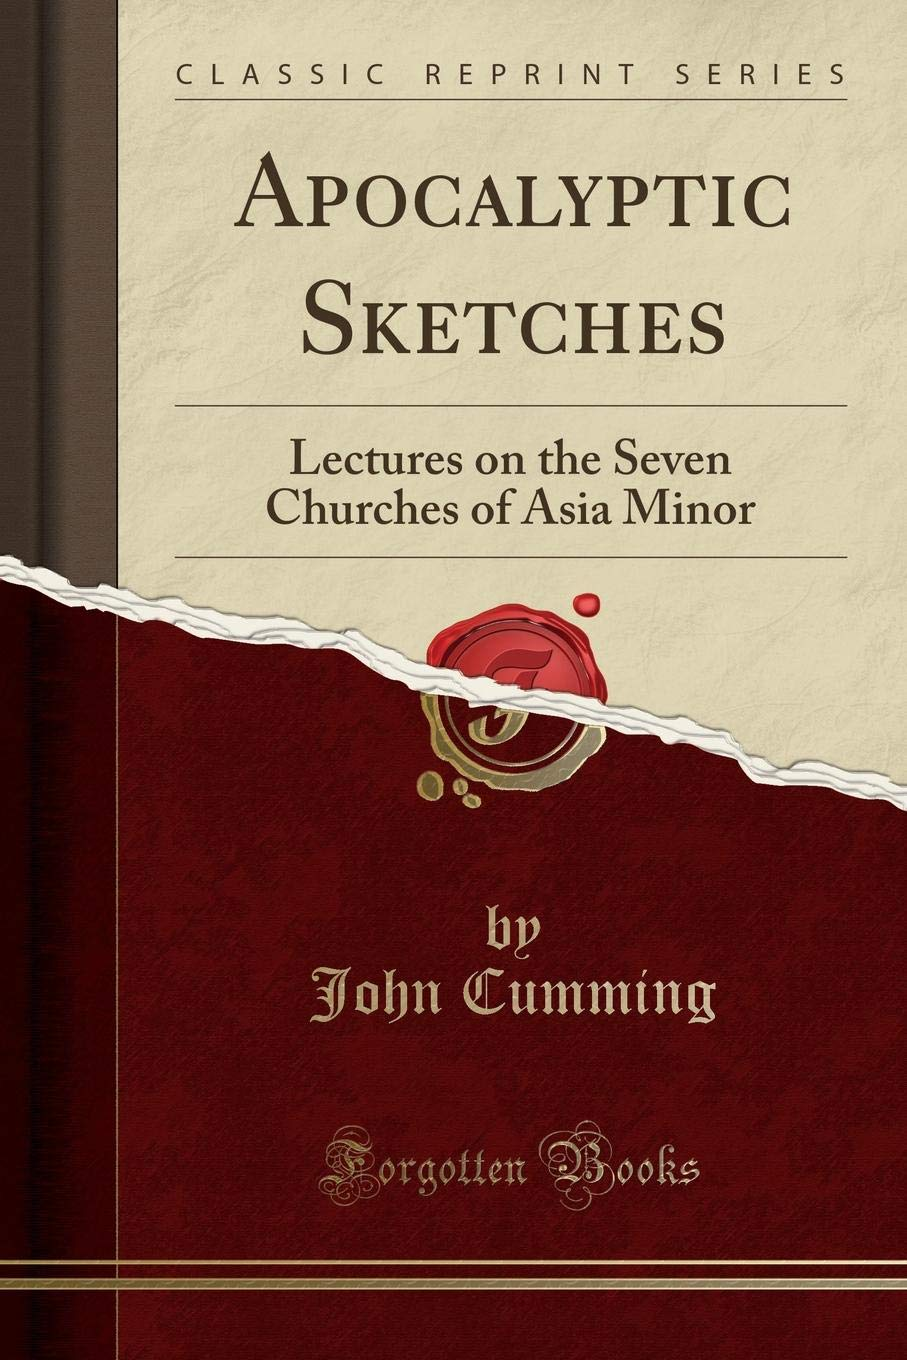 Apocalyptic Sketches: Lectures on the Seven Churches of Asia Minor (Classic Reprint) pdf